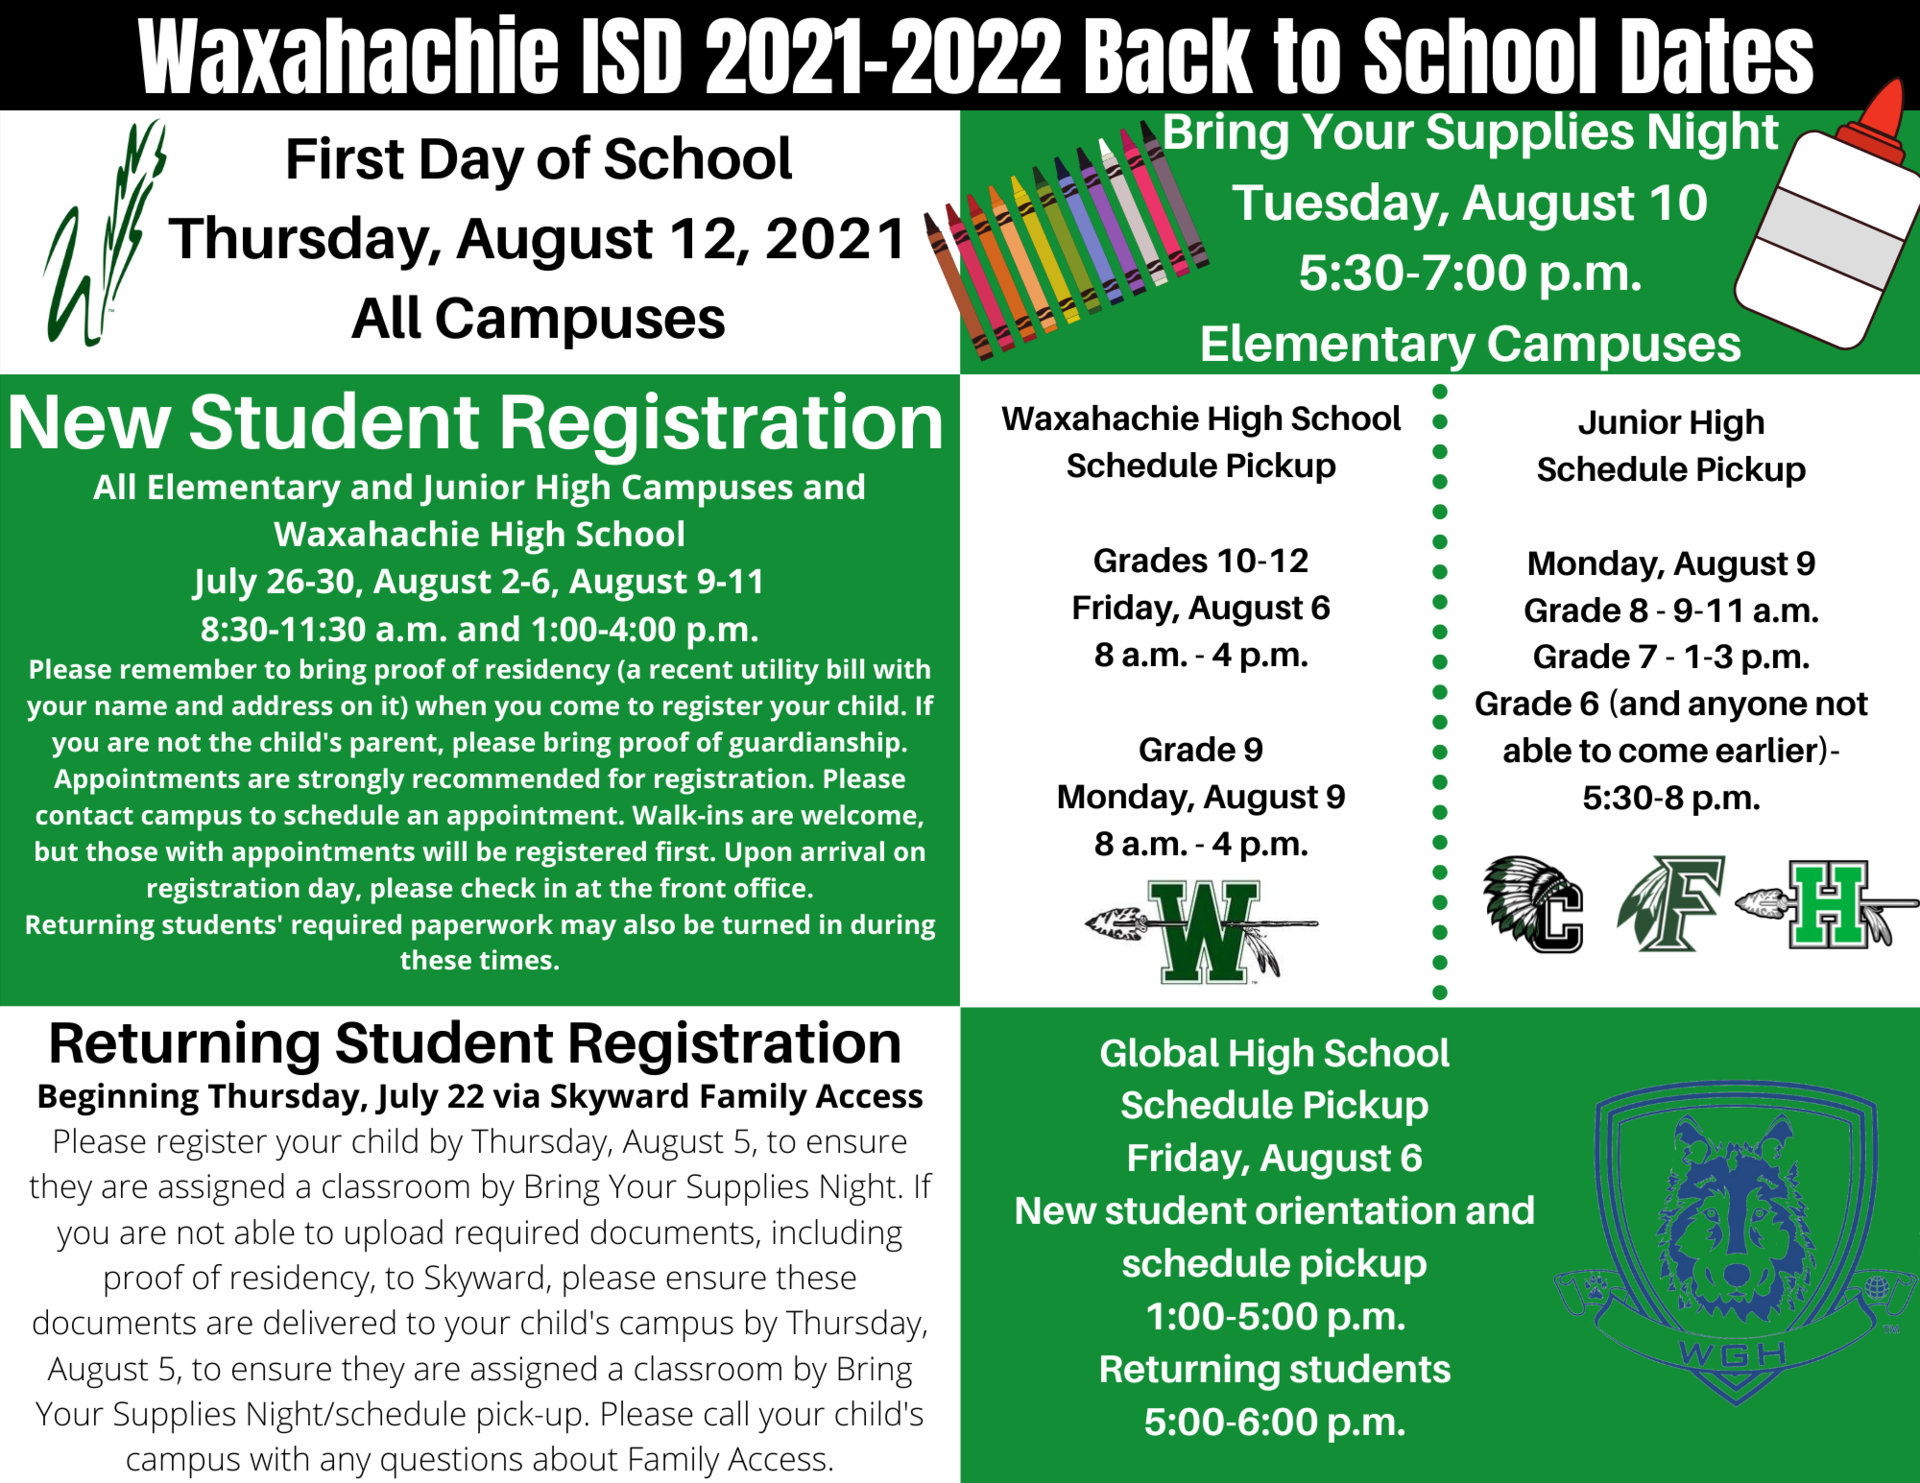 graphic with back to school dates